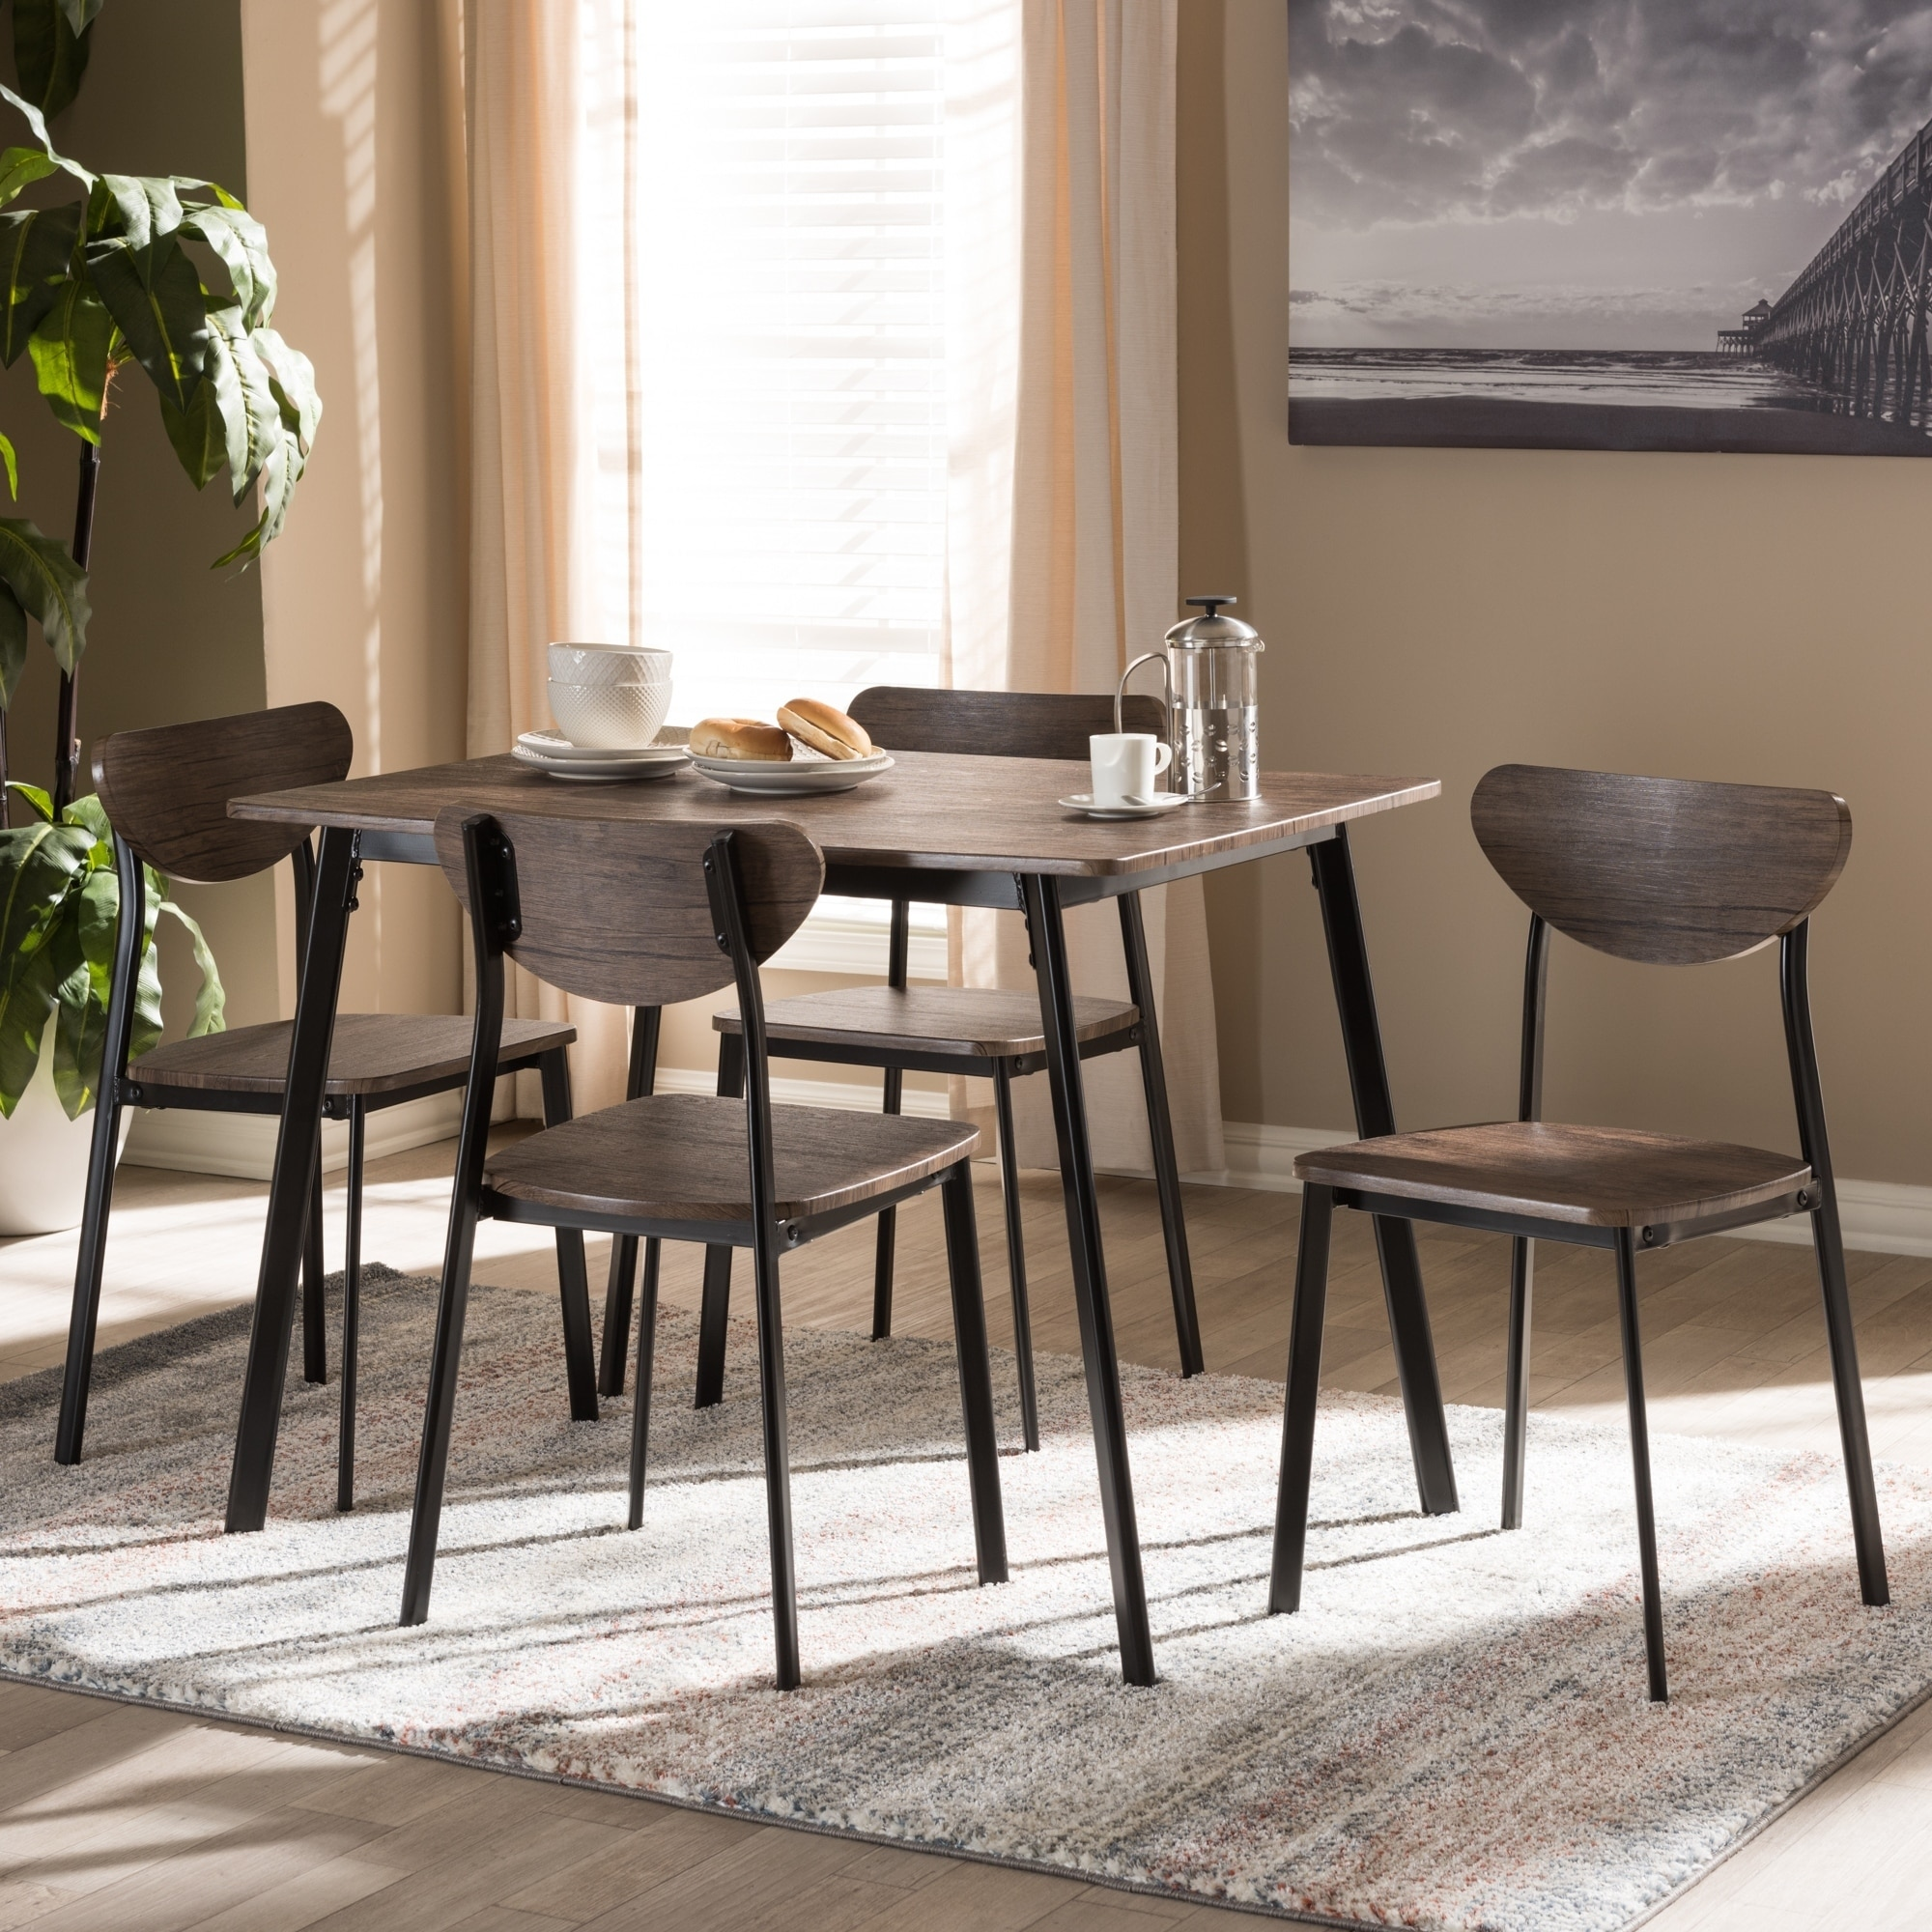 Dining Suites Melbourne Buy 5 Piece Sets Kitchen Dining Room Sets Online At Overstock